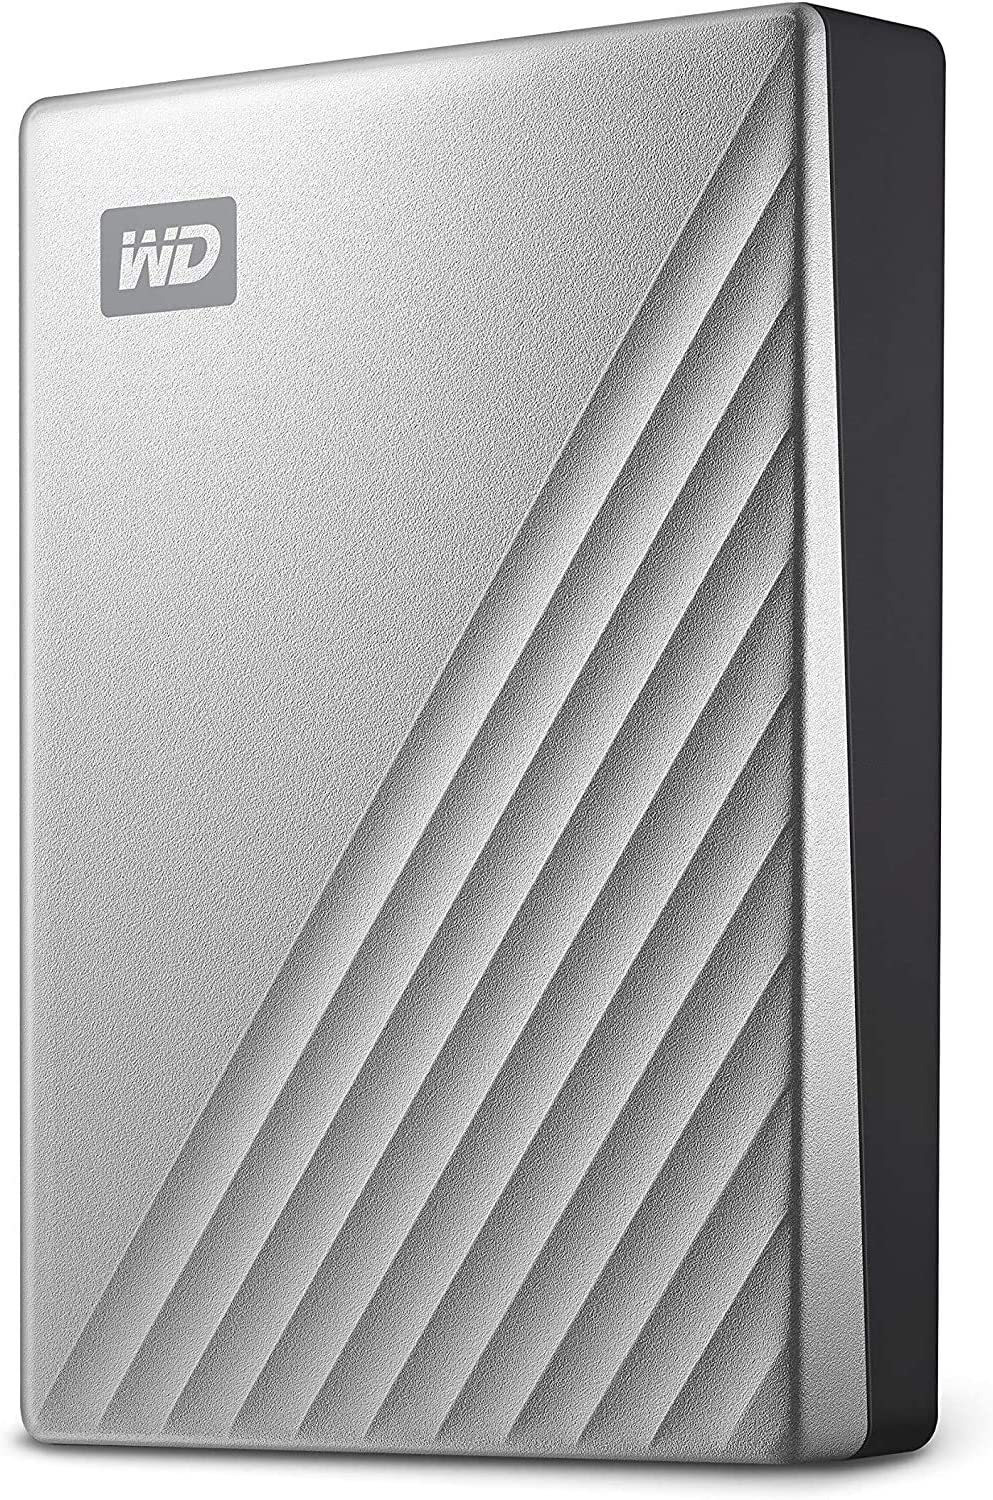 Disco duro WD My Passport Ultra USB-C 4TB para Mac